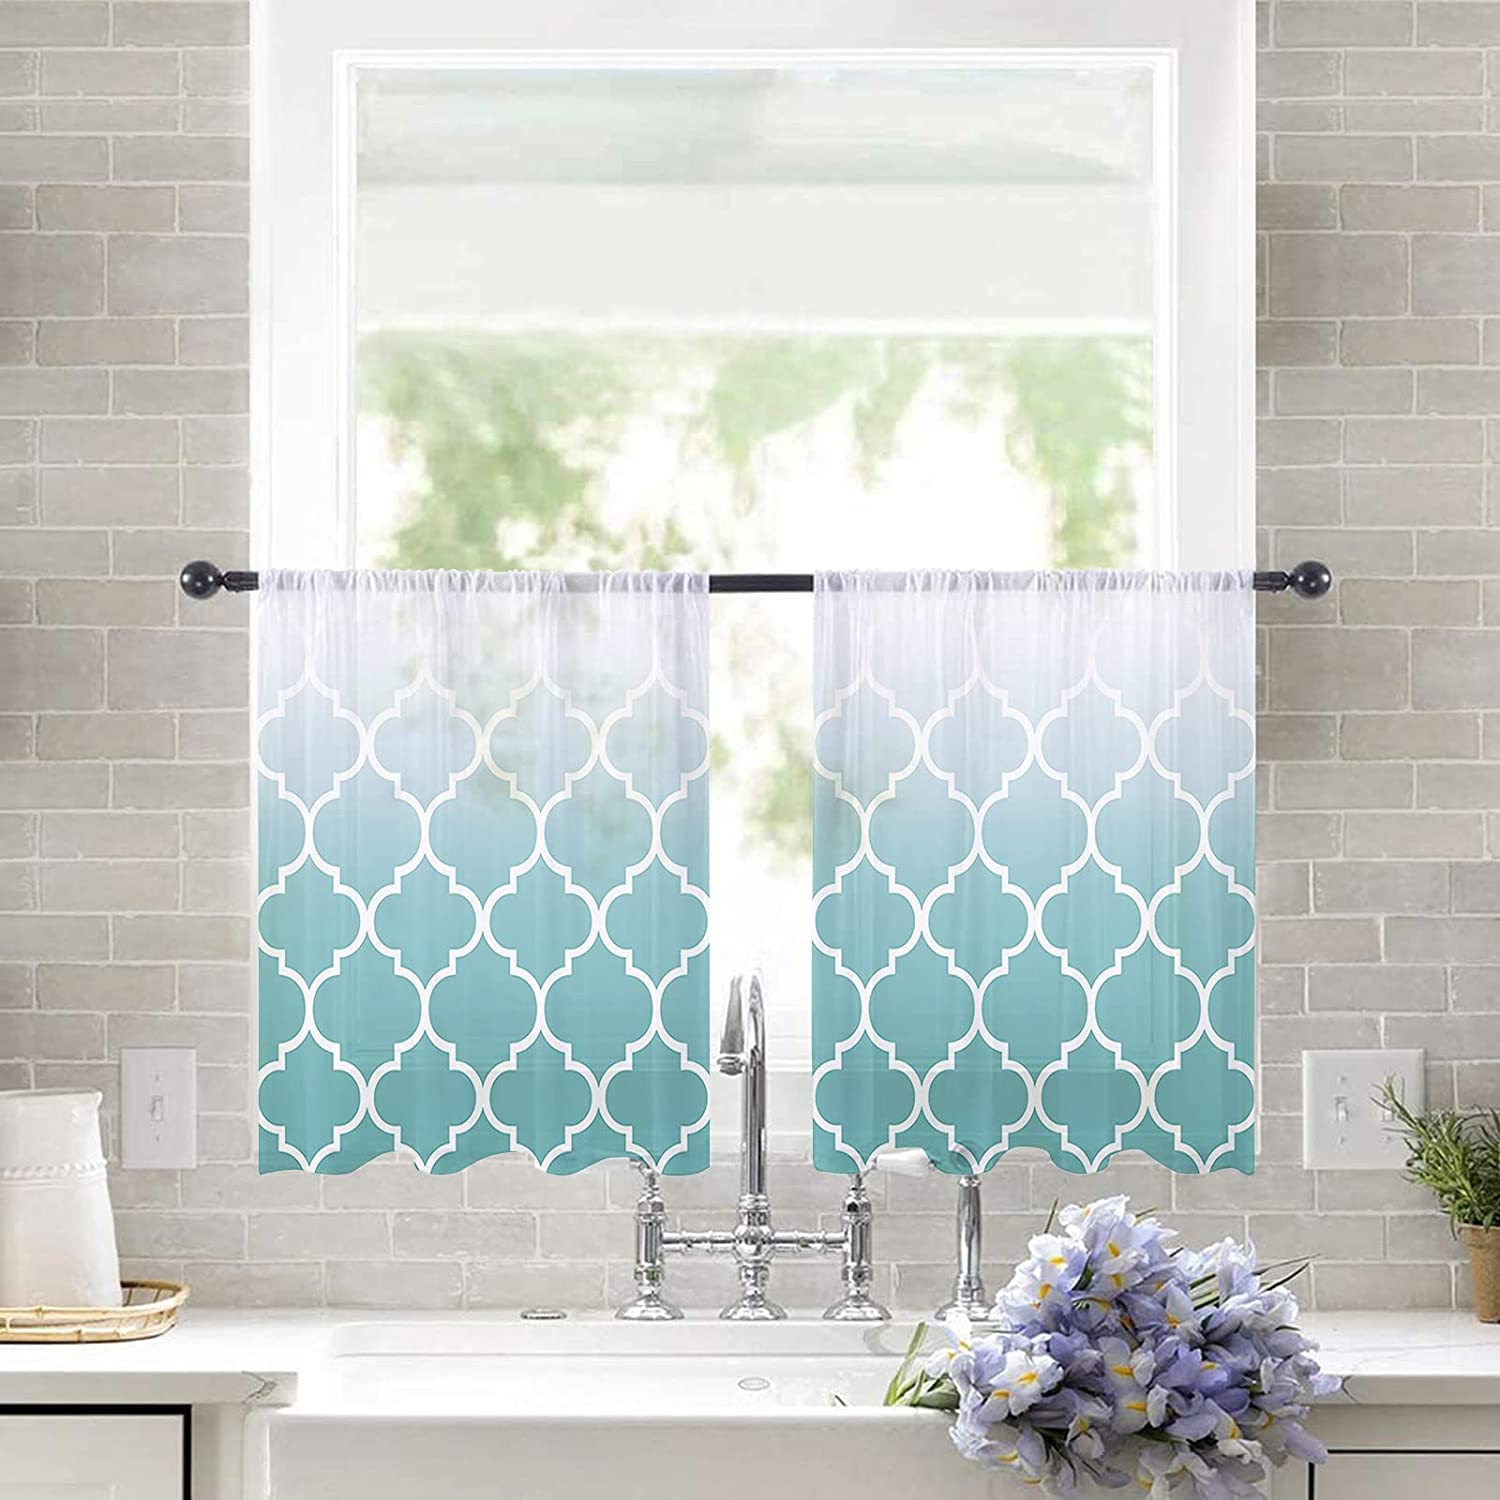 Sheer Curtains 54 Inches New life Long for Set Turqu Bedroom Panel Max 45% OFF 2 Cyan